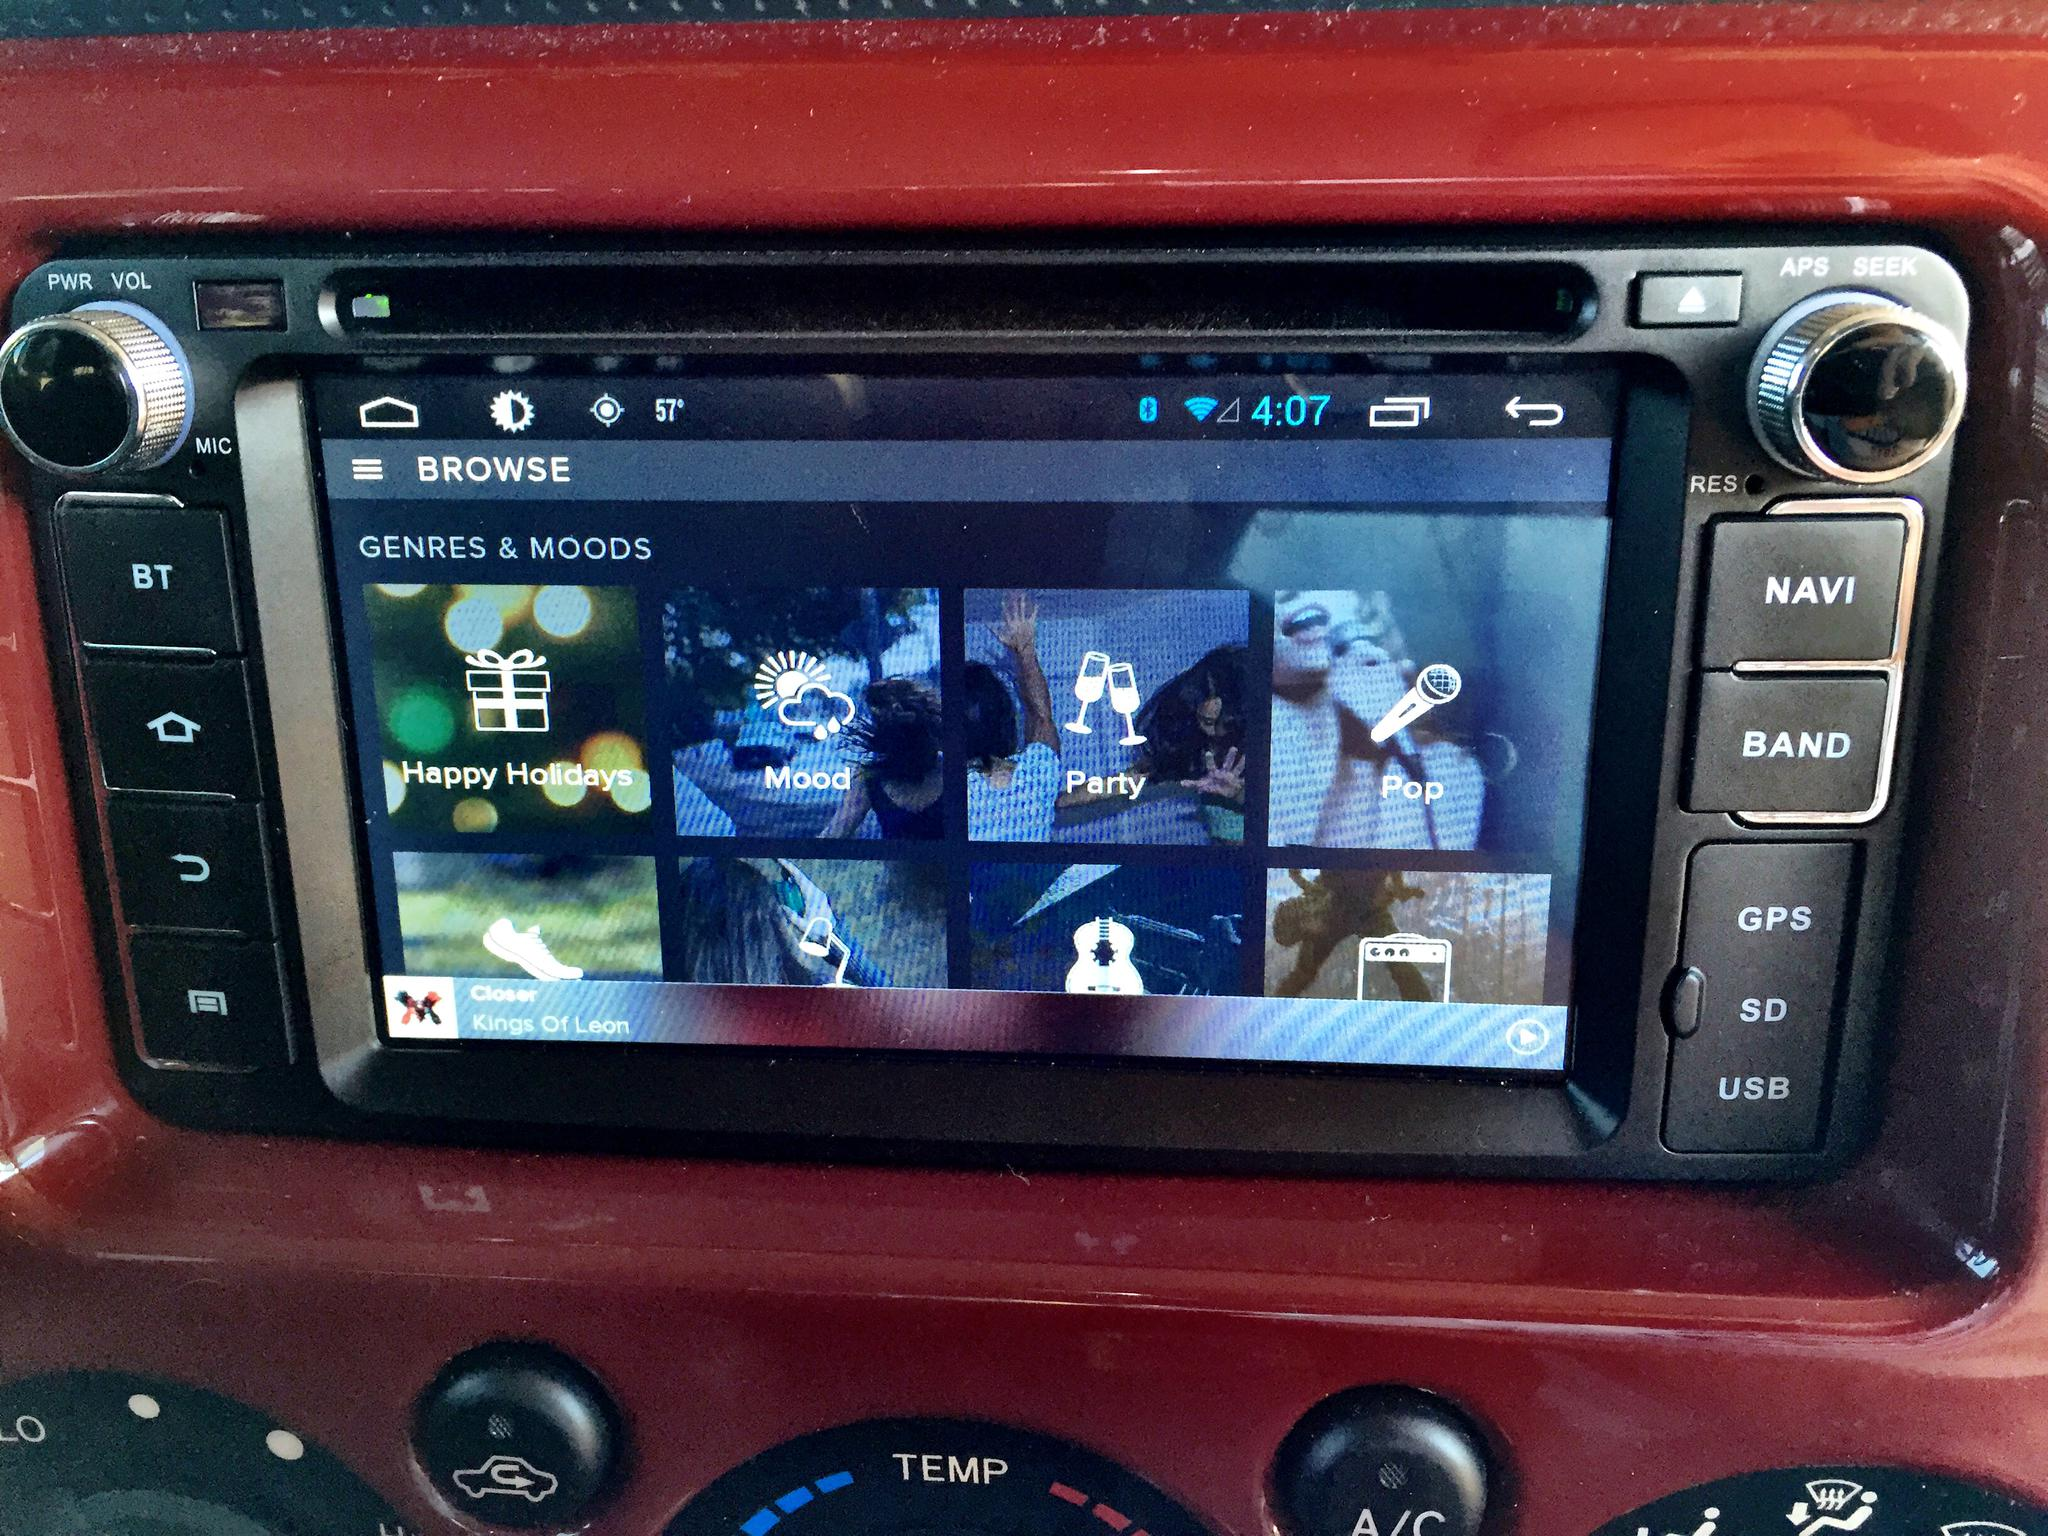 wiring diagram car stereo system viper alarm remote start fj cruiser upgrade / android head unit speaker replacement - toyota forum